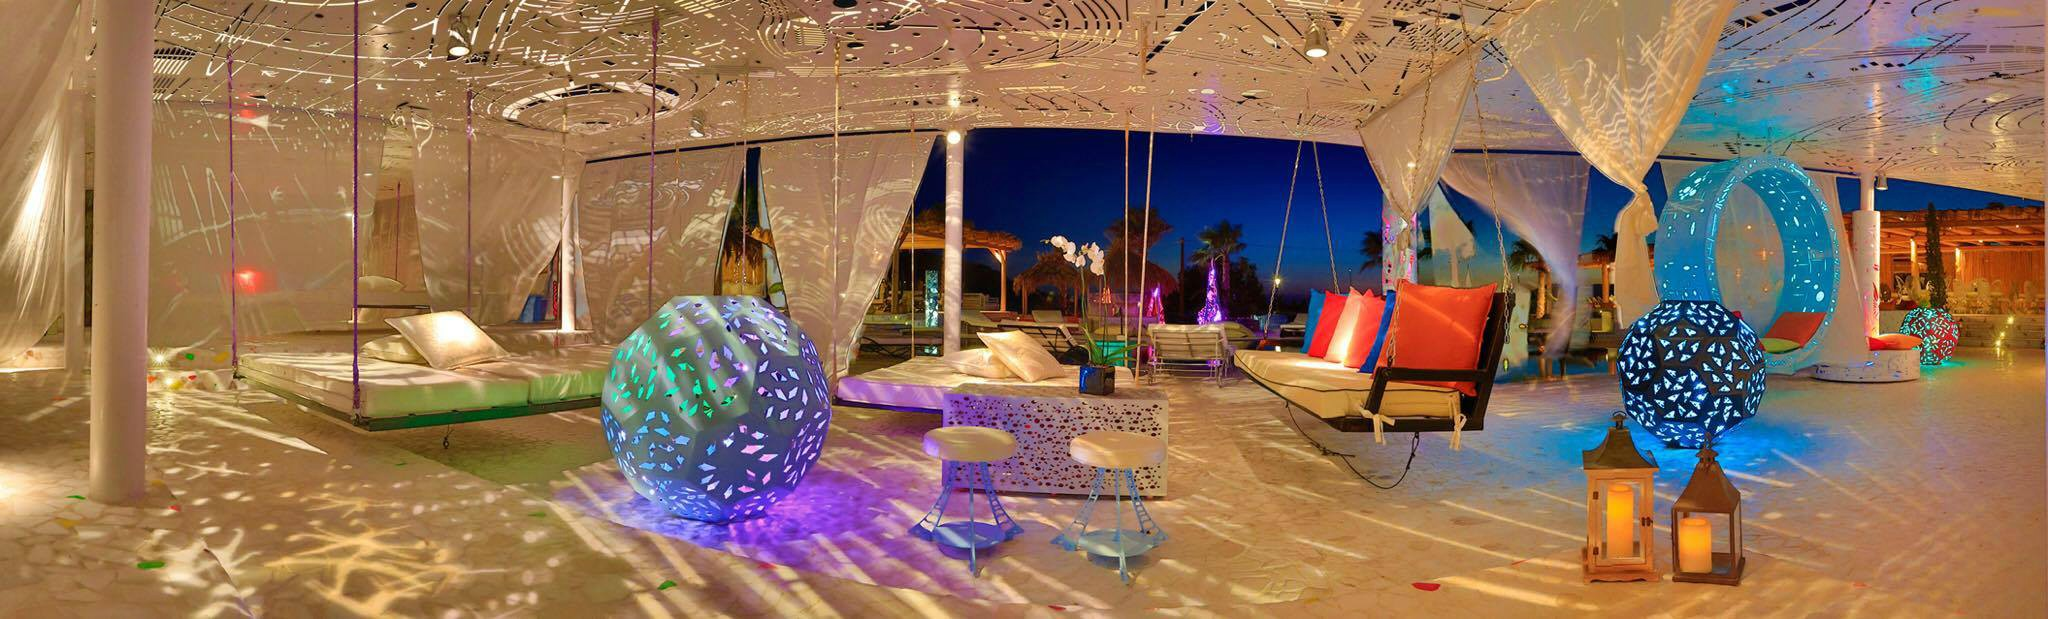 Book your wedding day in Free Beach Bar & Restaurant Ios